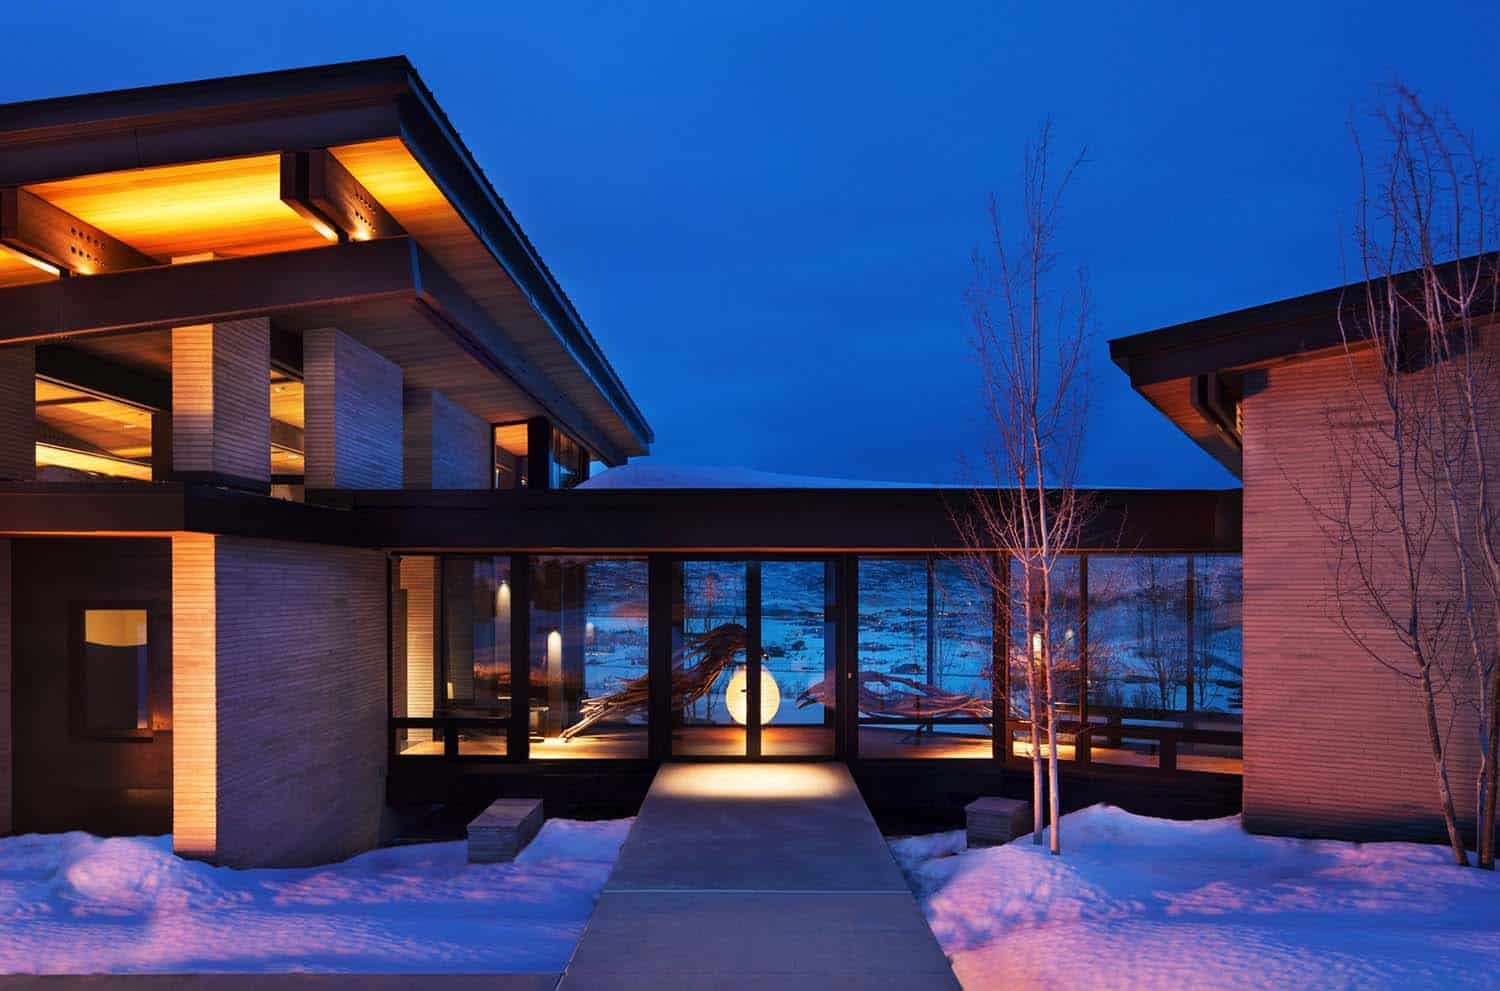 Contemporary Mountain Residence-RKD Architects-03-1 Kindesign